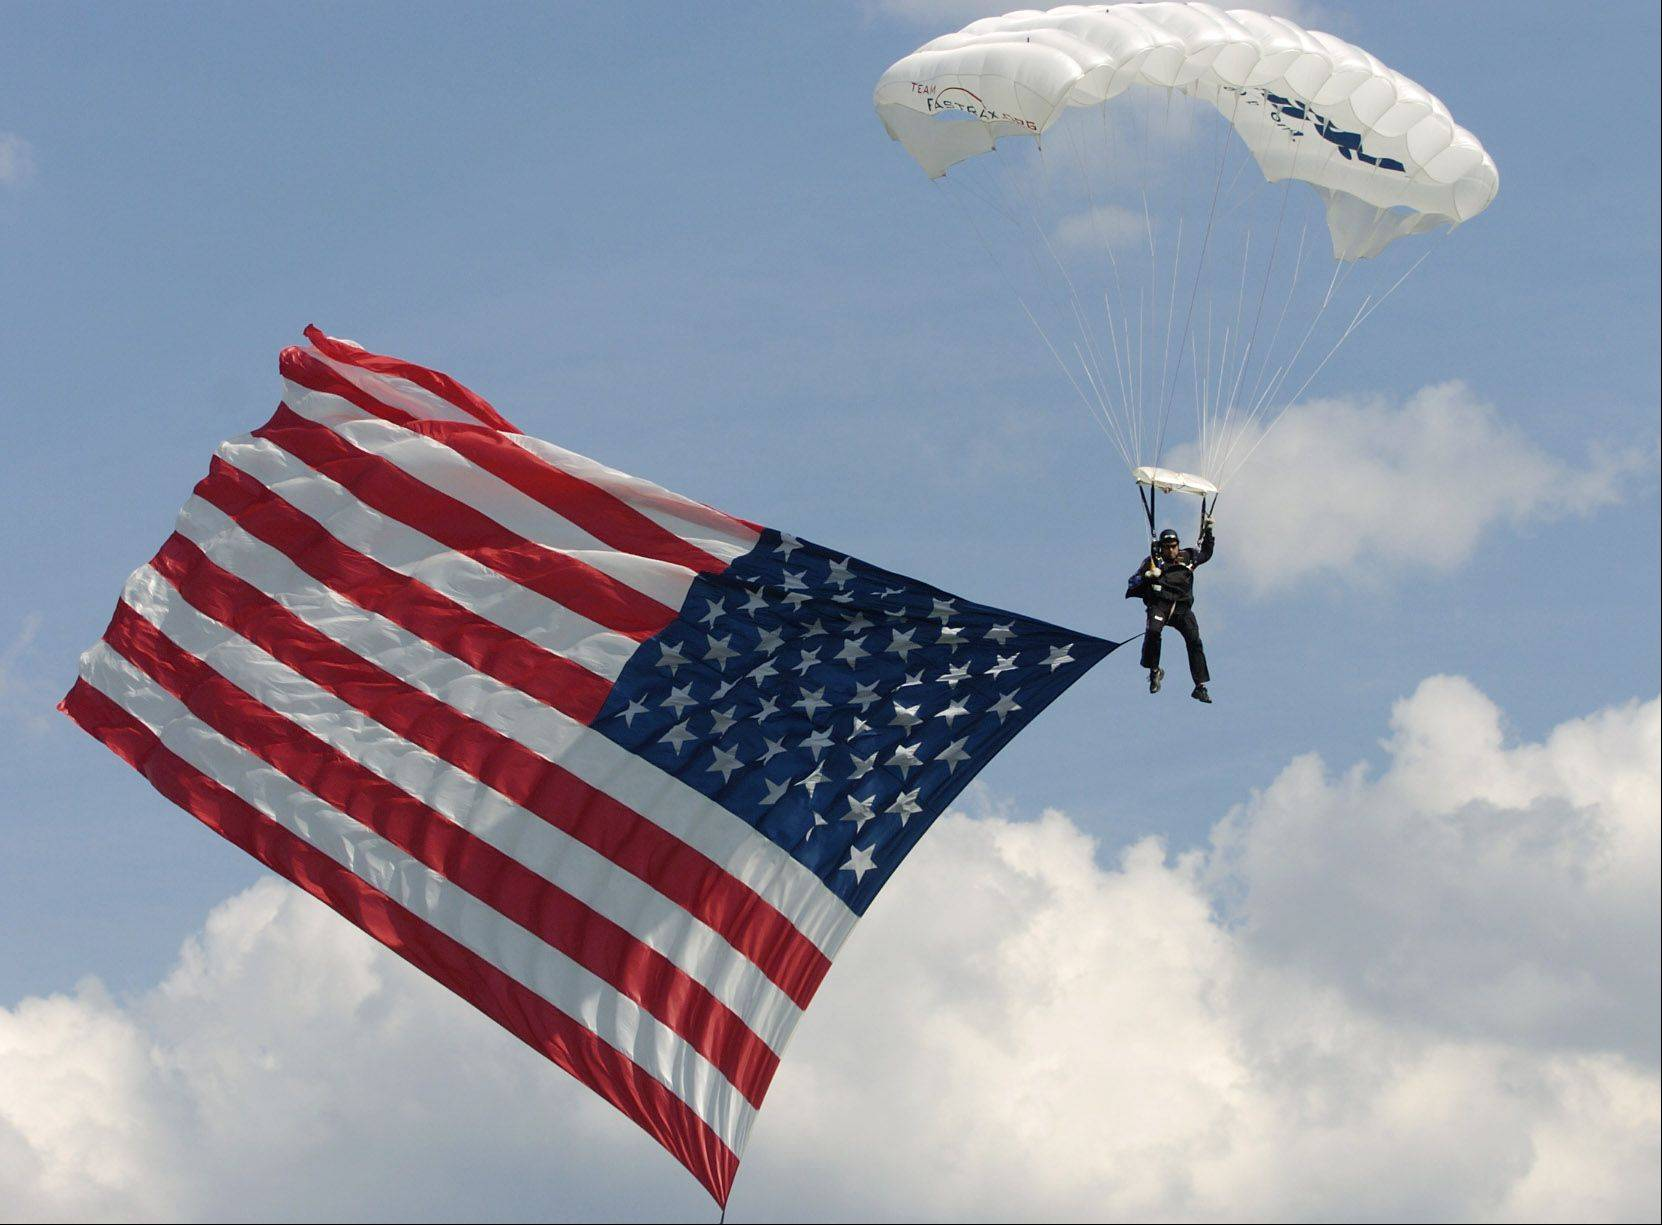 Former Army Ranger Dave Hart sky-dives with an 1100 square foot American flag during a ceremony at Newport Cove in Antioch, honoring Nick Mapson, Army veteran severely burned in a roadside bomb attack in Afghanistan.